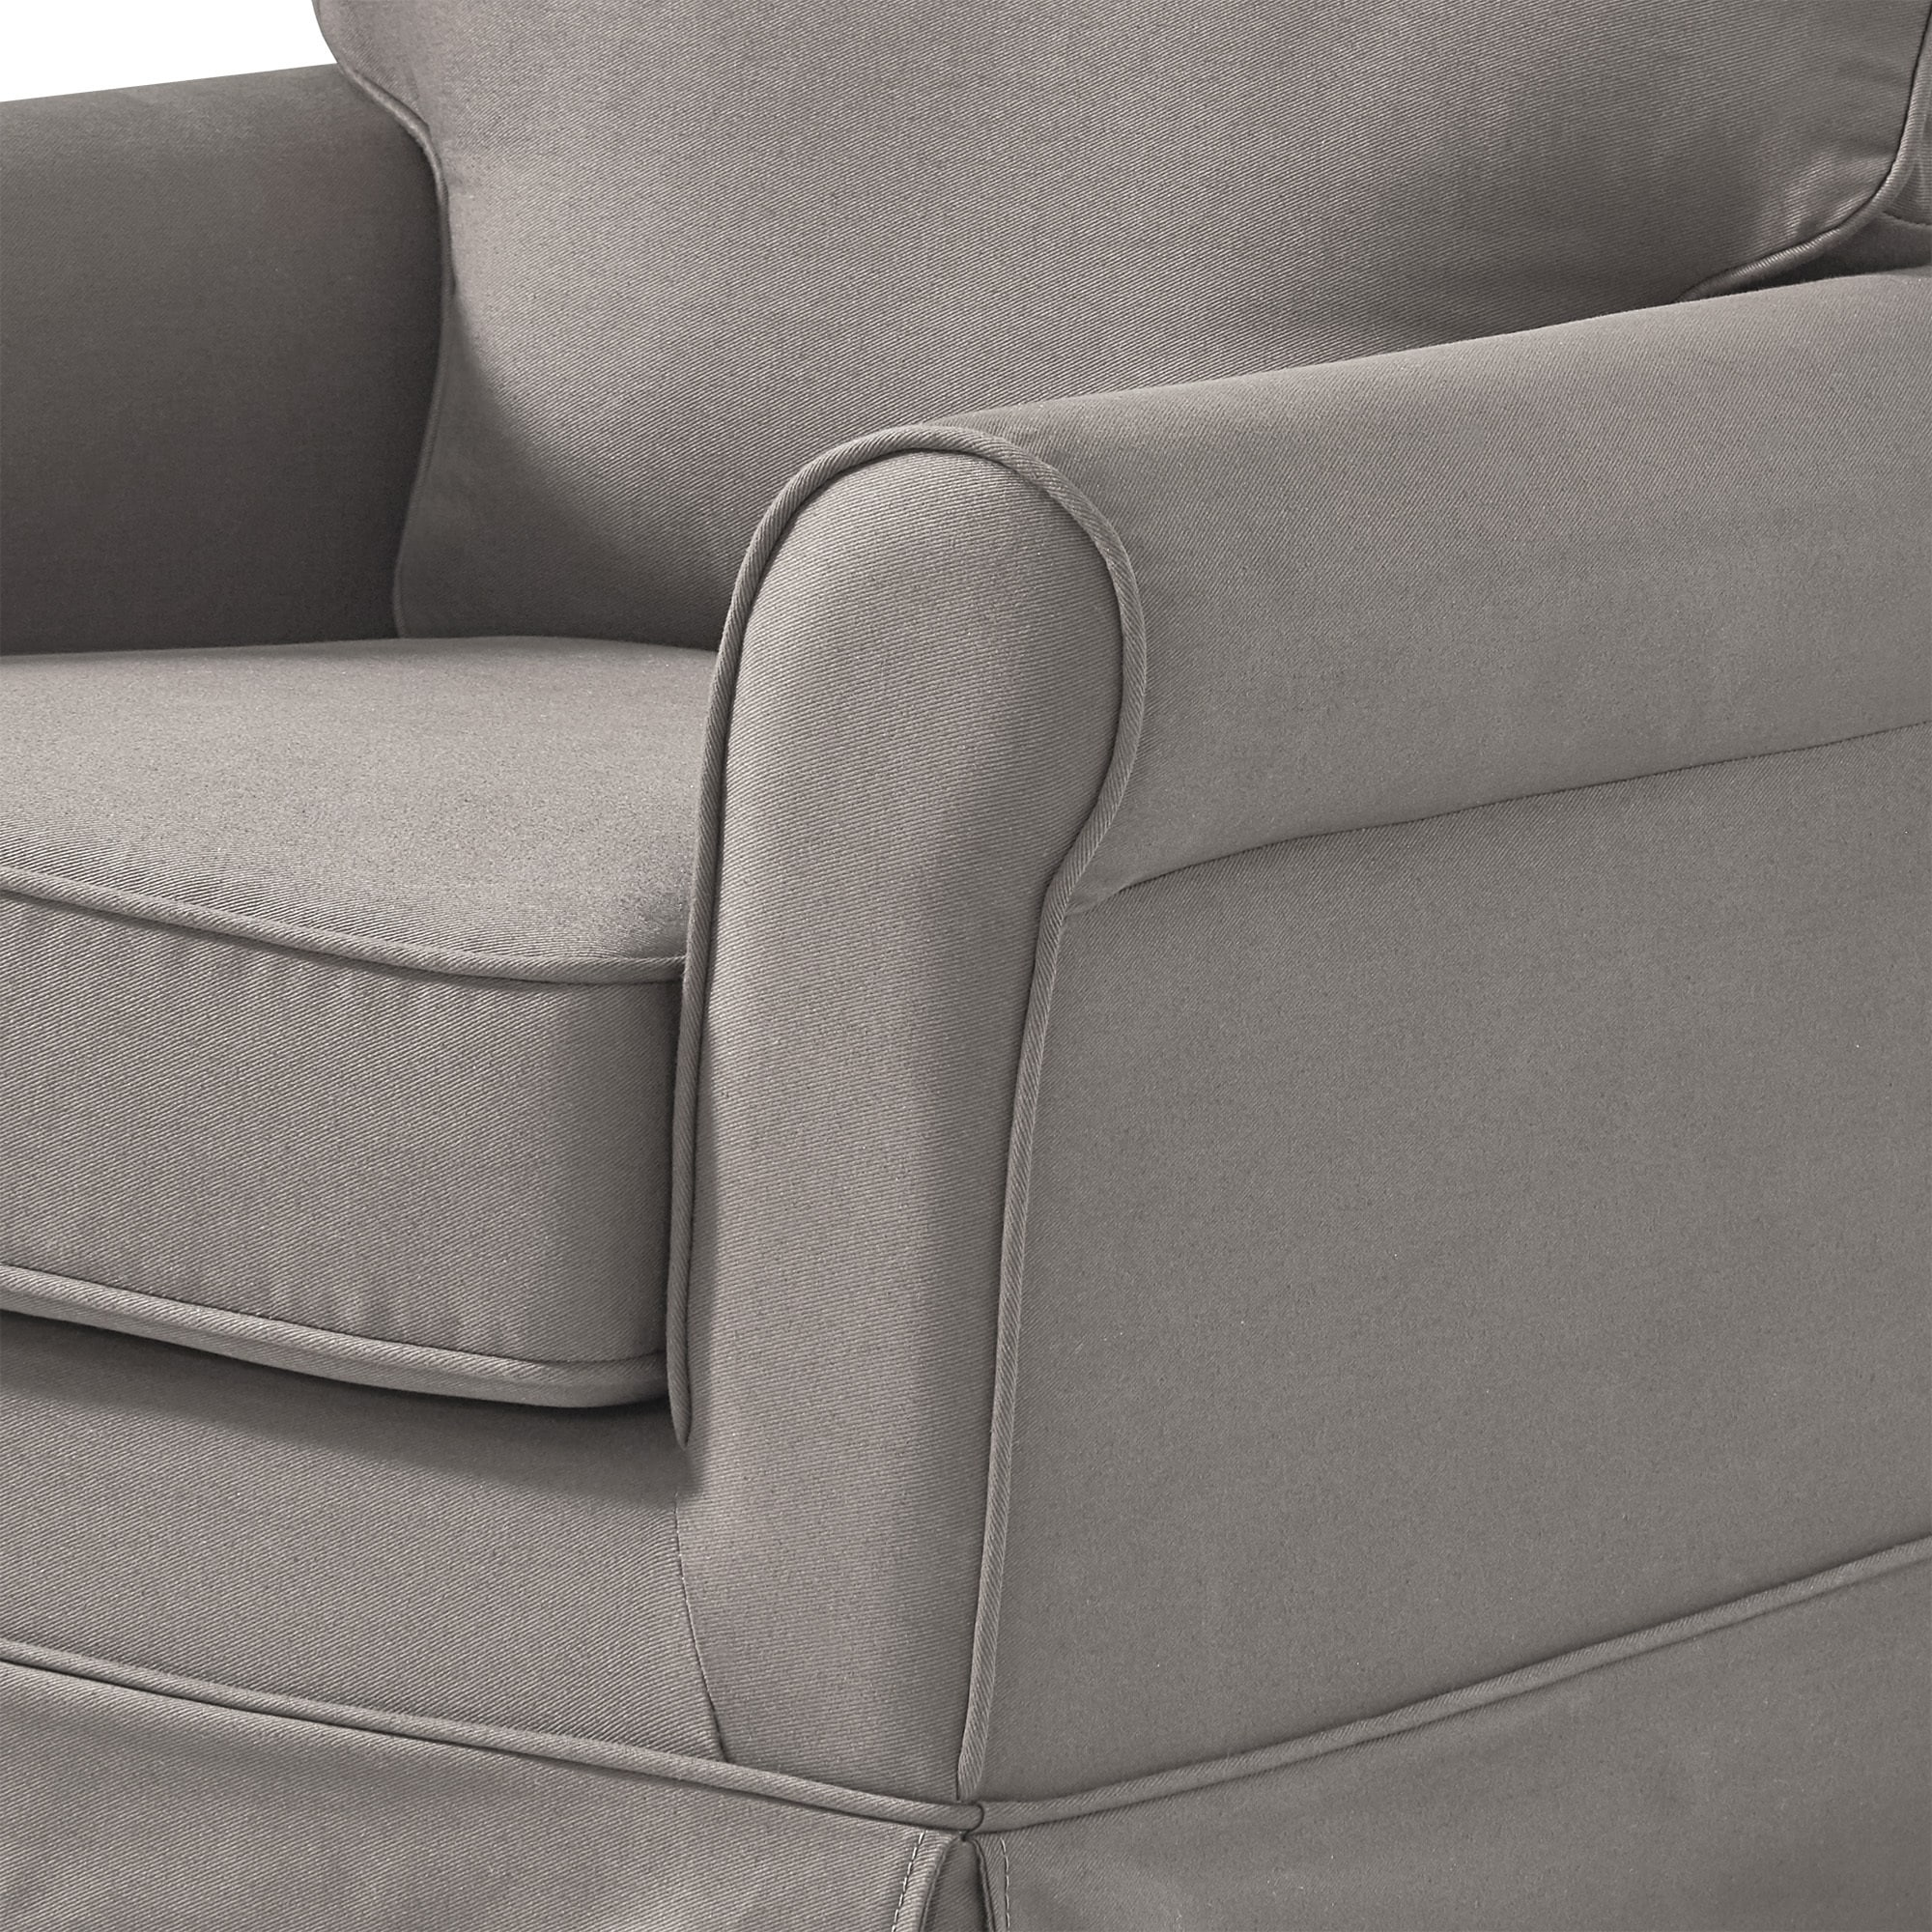 Fallon Rolled Arm Cotton Fabric Swivel Rocking Chair by iNSPIRE Q Classic -  Free Shipping Today - Overstock.com - 20742637